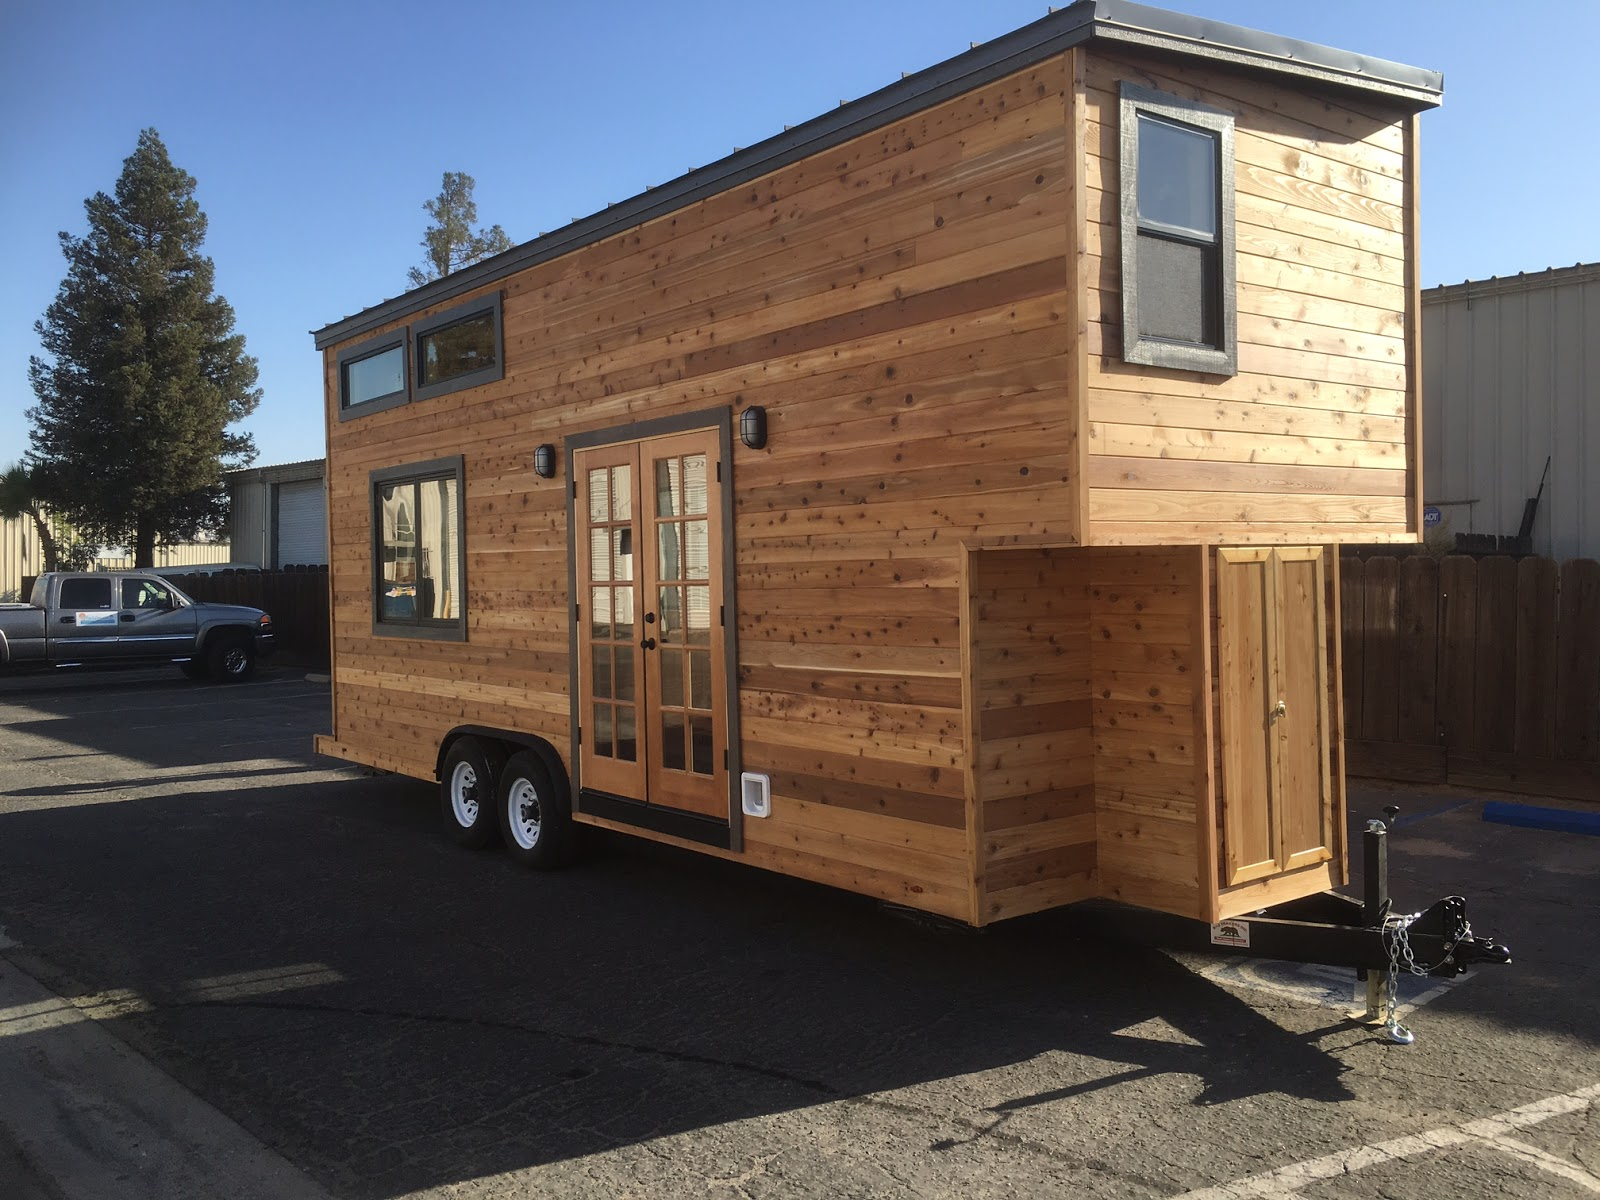 California Tiny House 3 TINY HOUSE TOWN